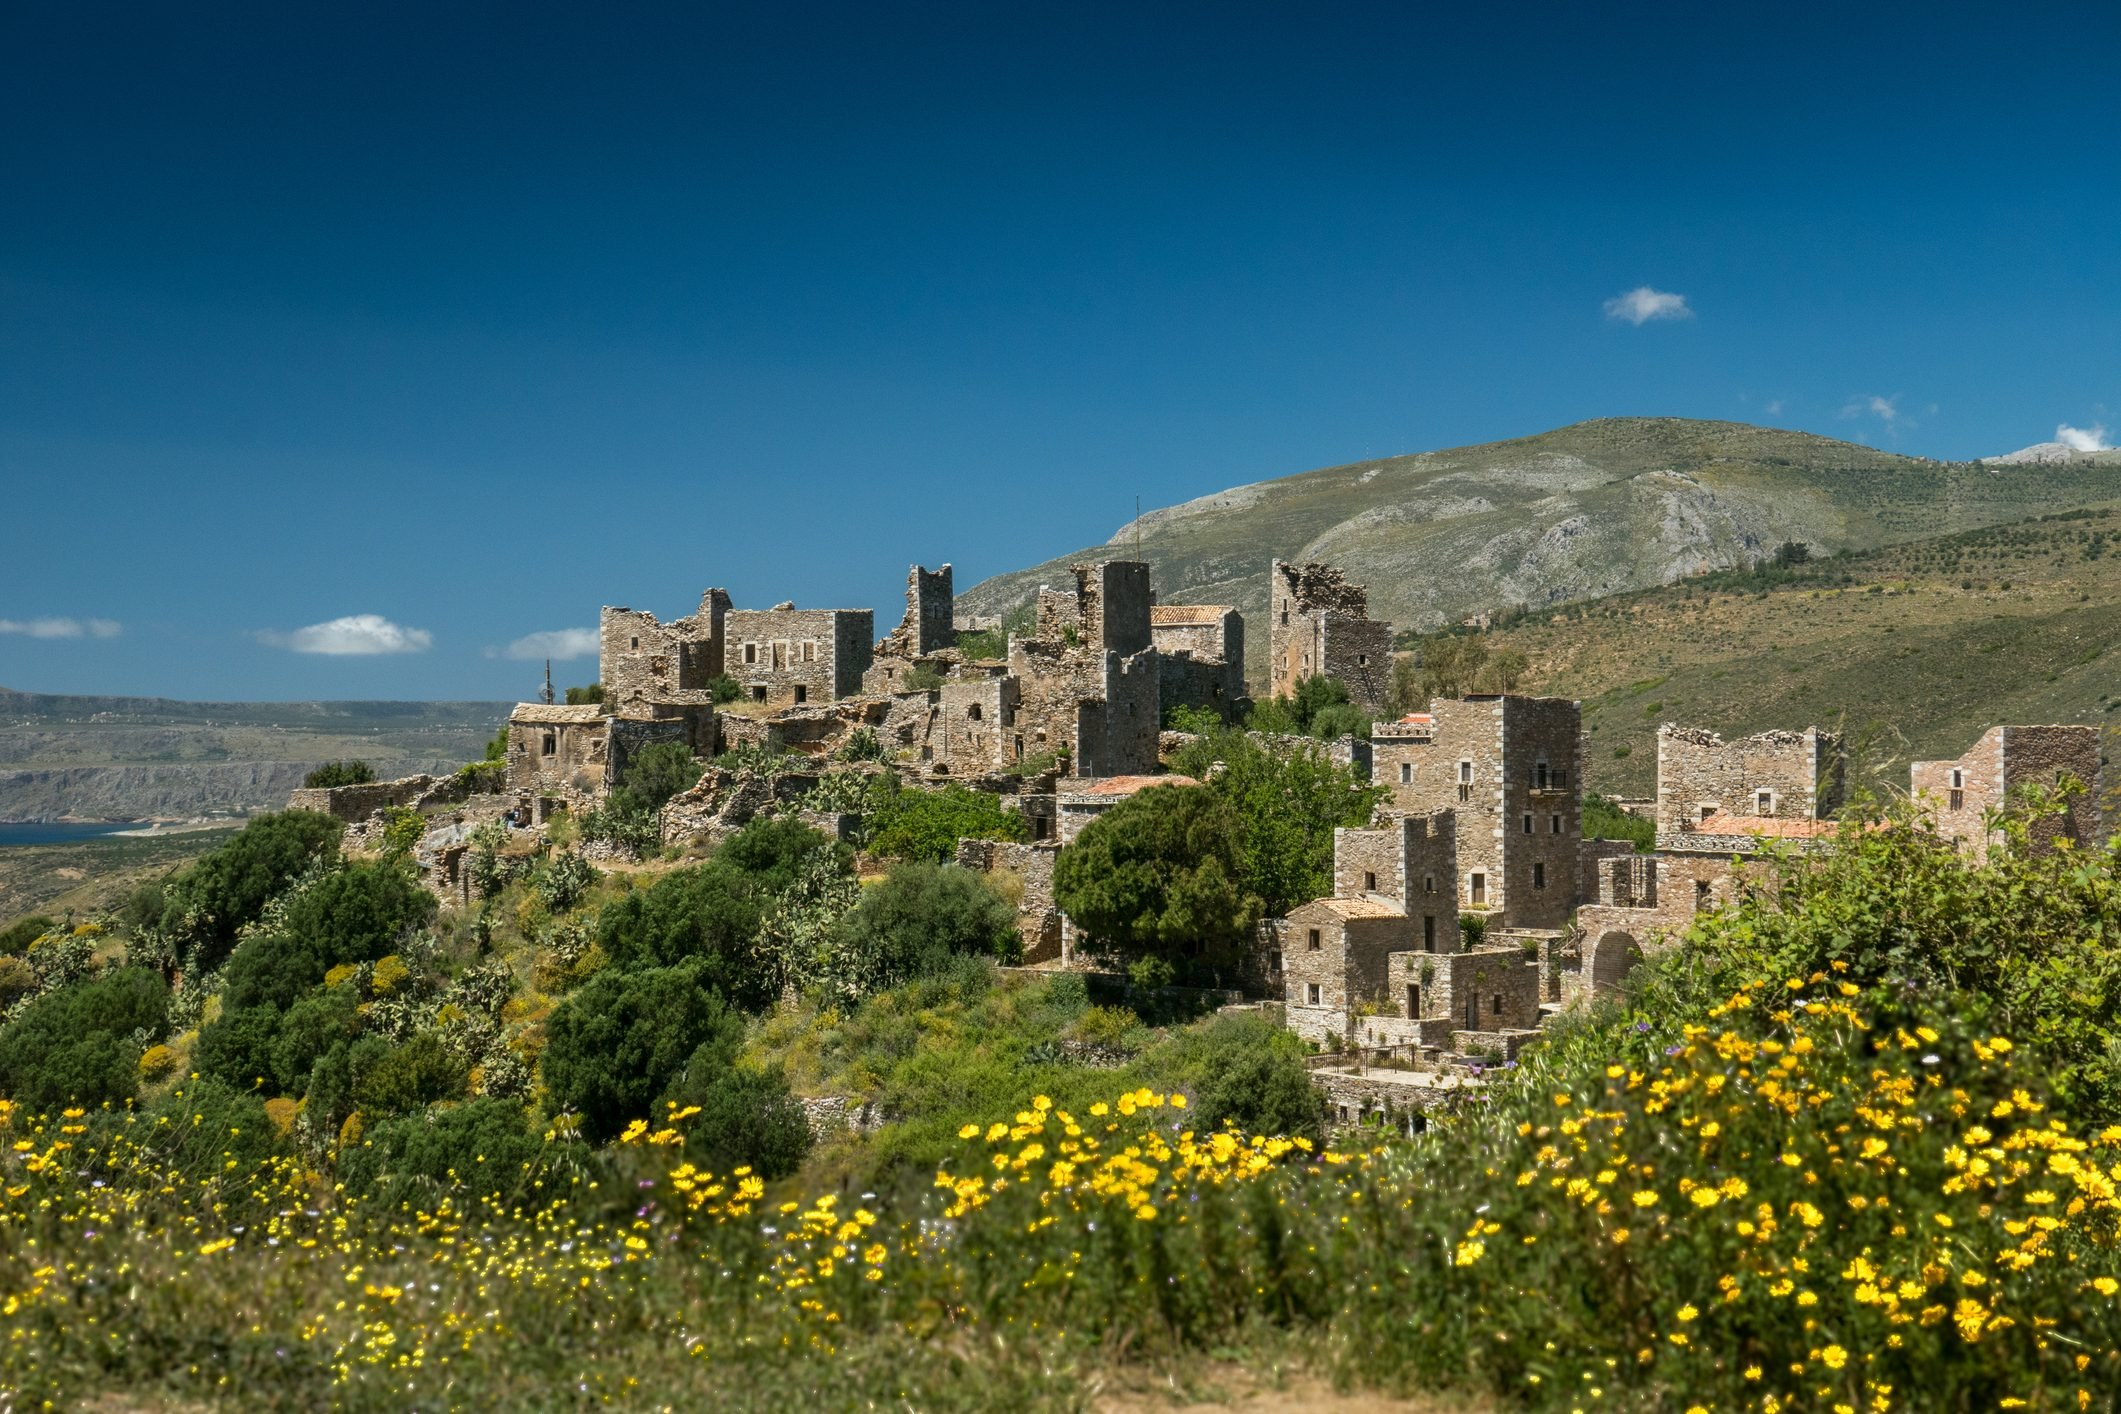 The tower houses of Vathia in southern Greece (Peloponnesos)